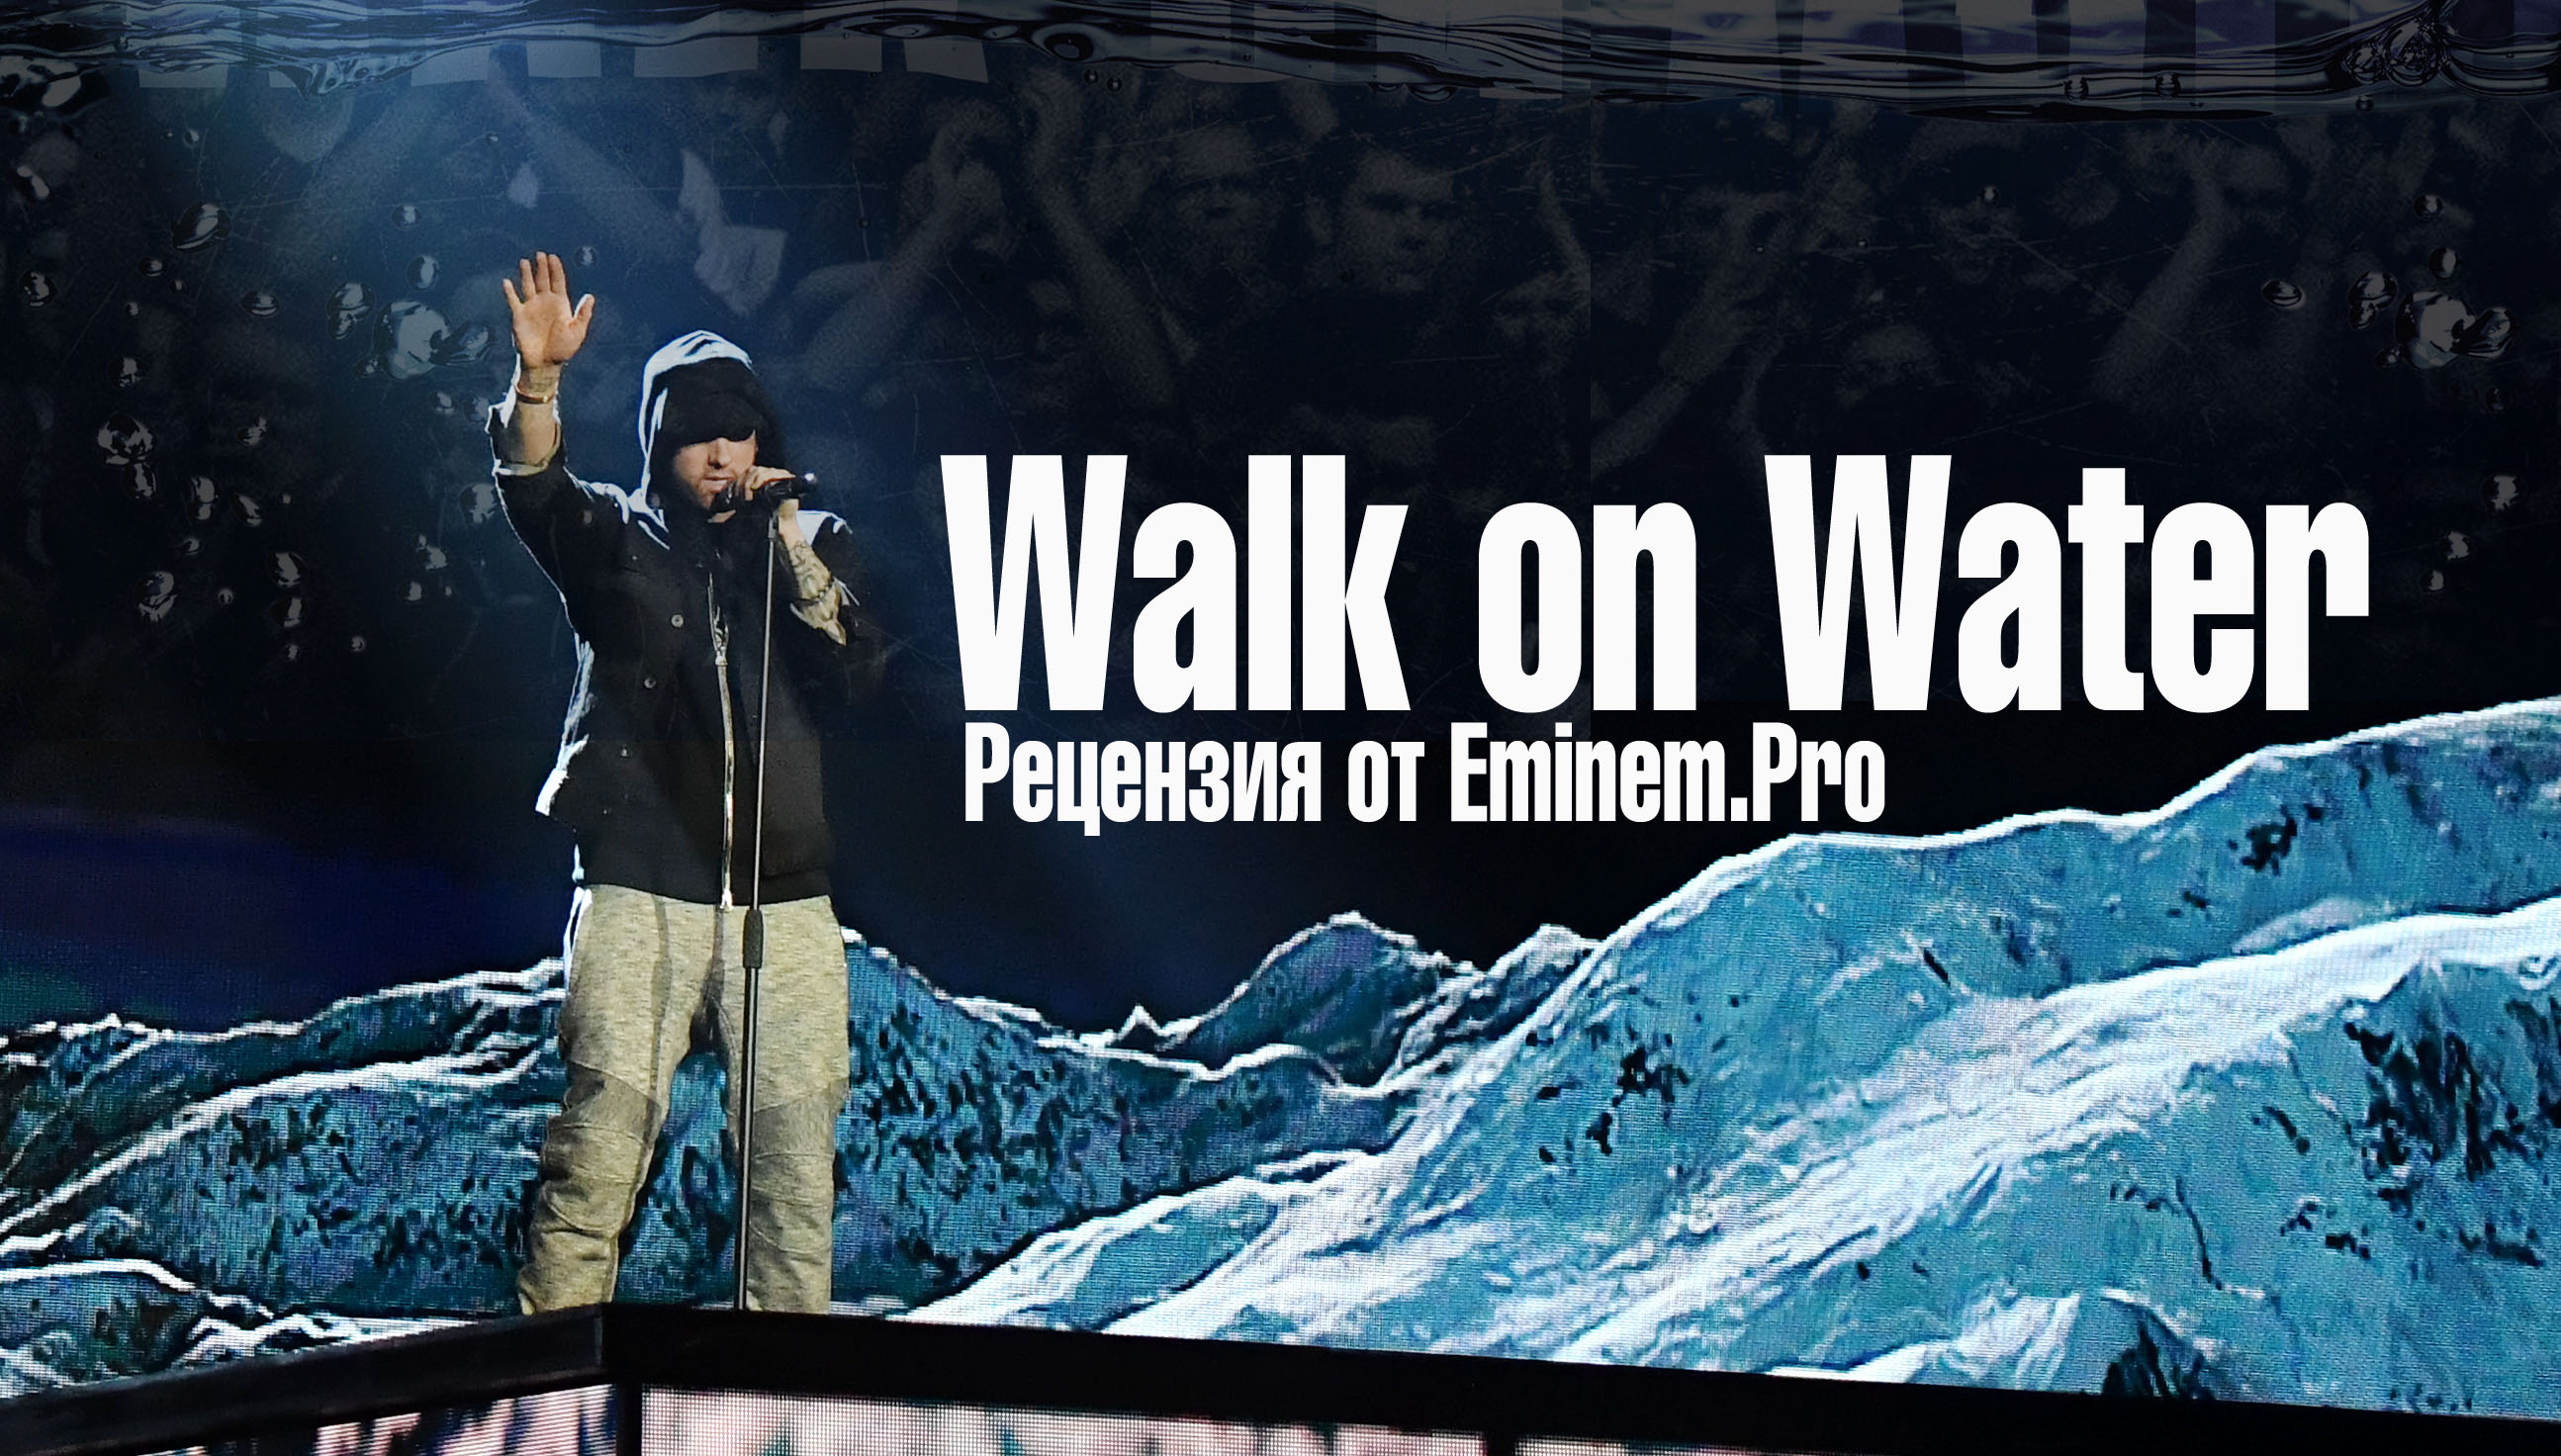 Рецензия «Eminem.Pro» на трек Eminem'а и Beyoncé — «Walk on Water»